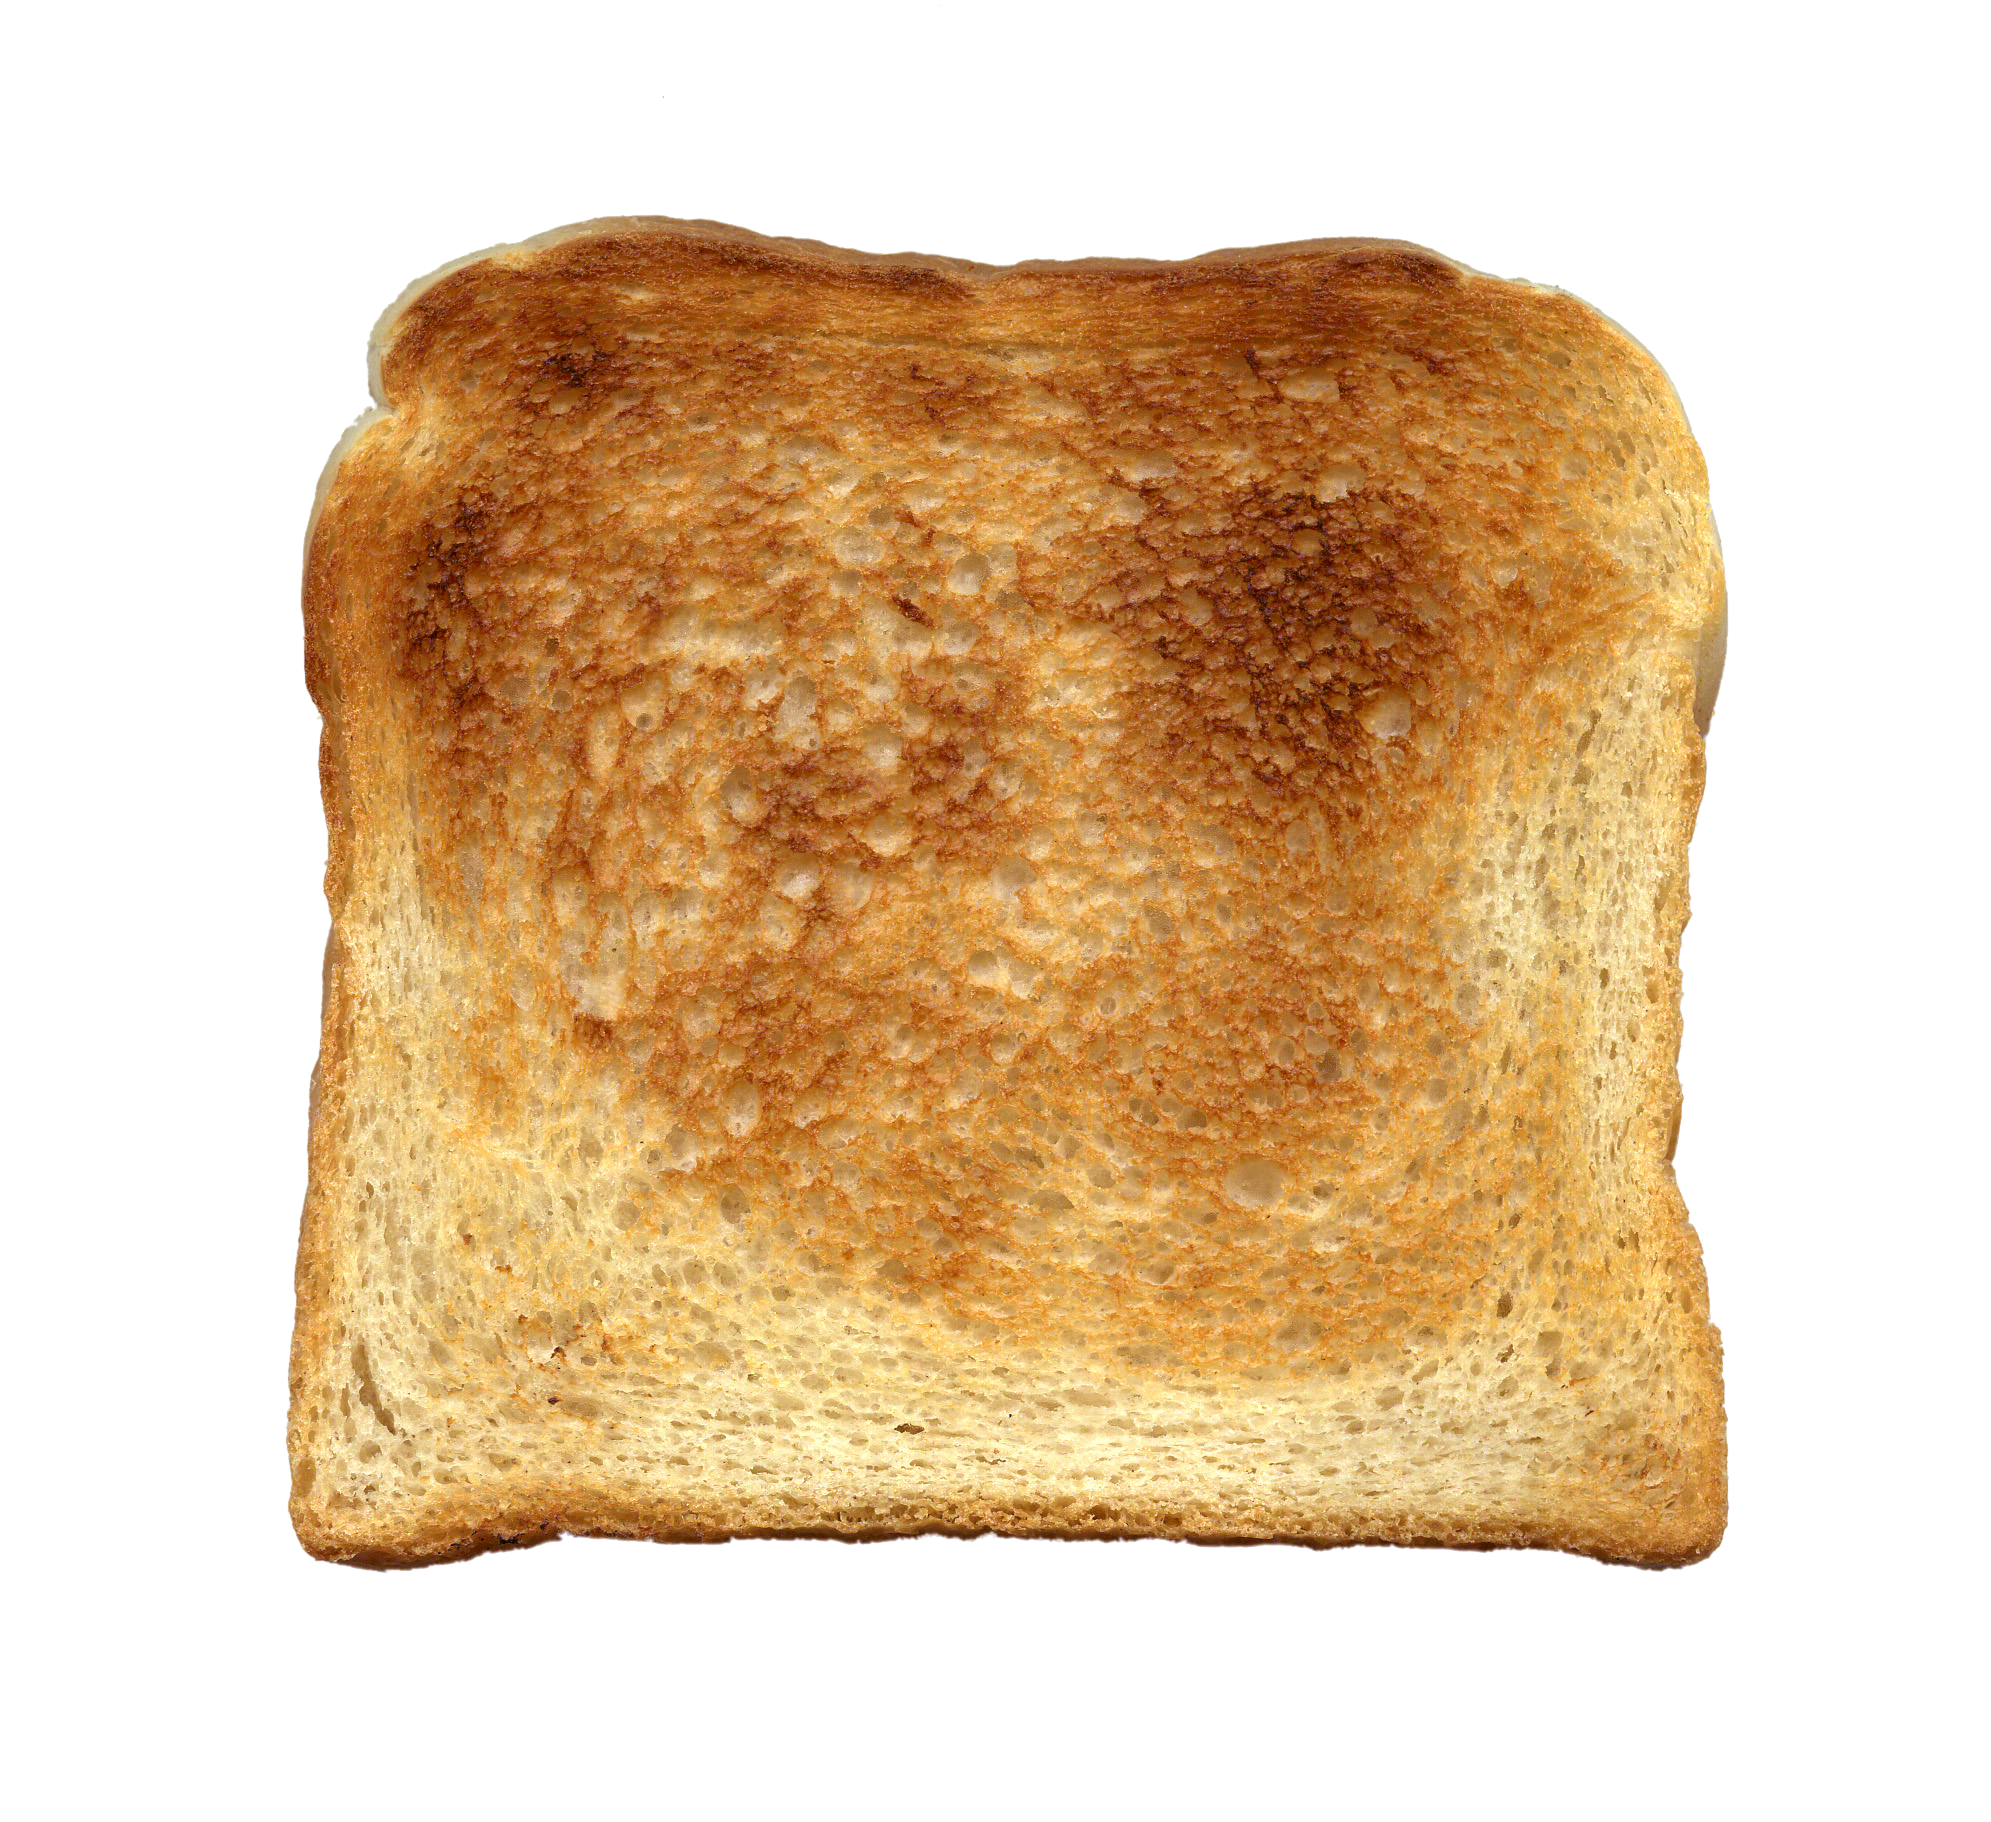 Toast   Free Images At Clker Com   Vector Clip Art Online Royalty